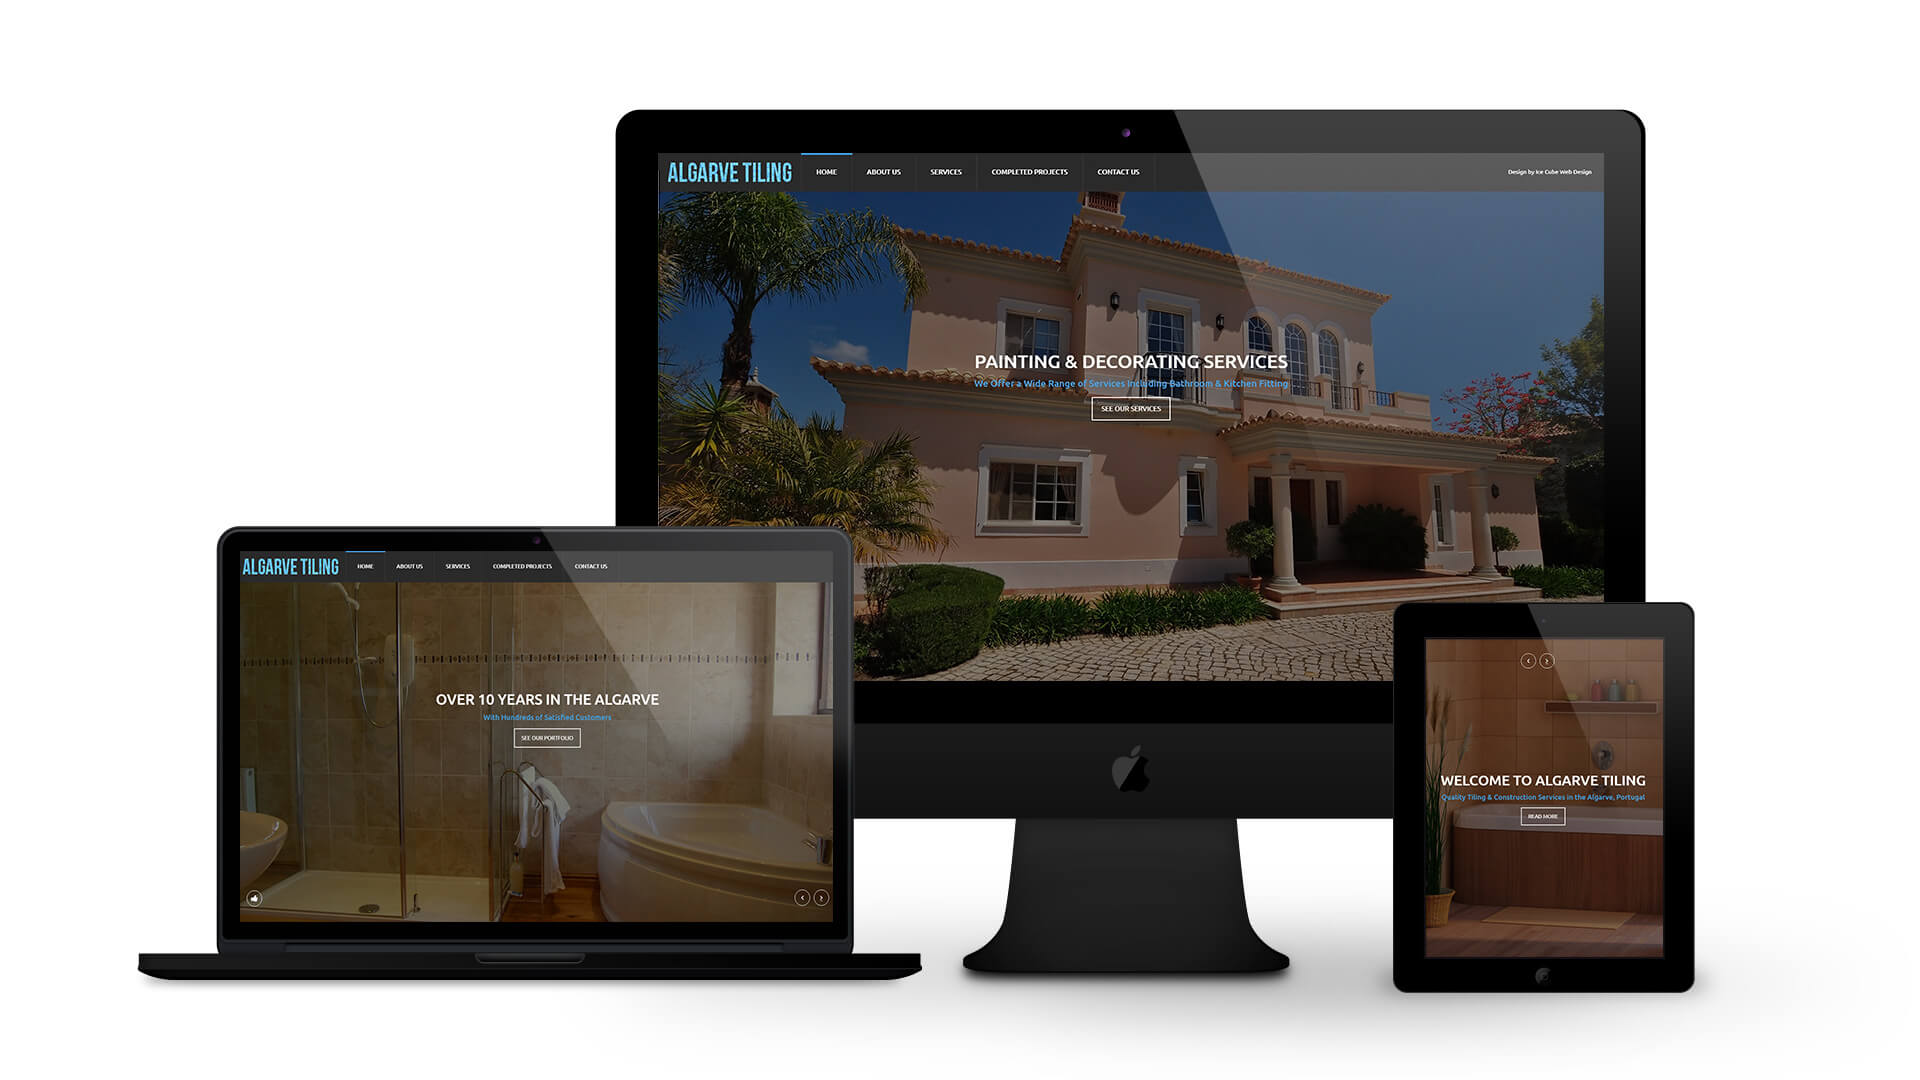 Albufeira Tiling - By Ice Cube Web Design